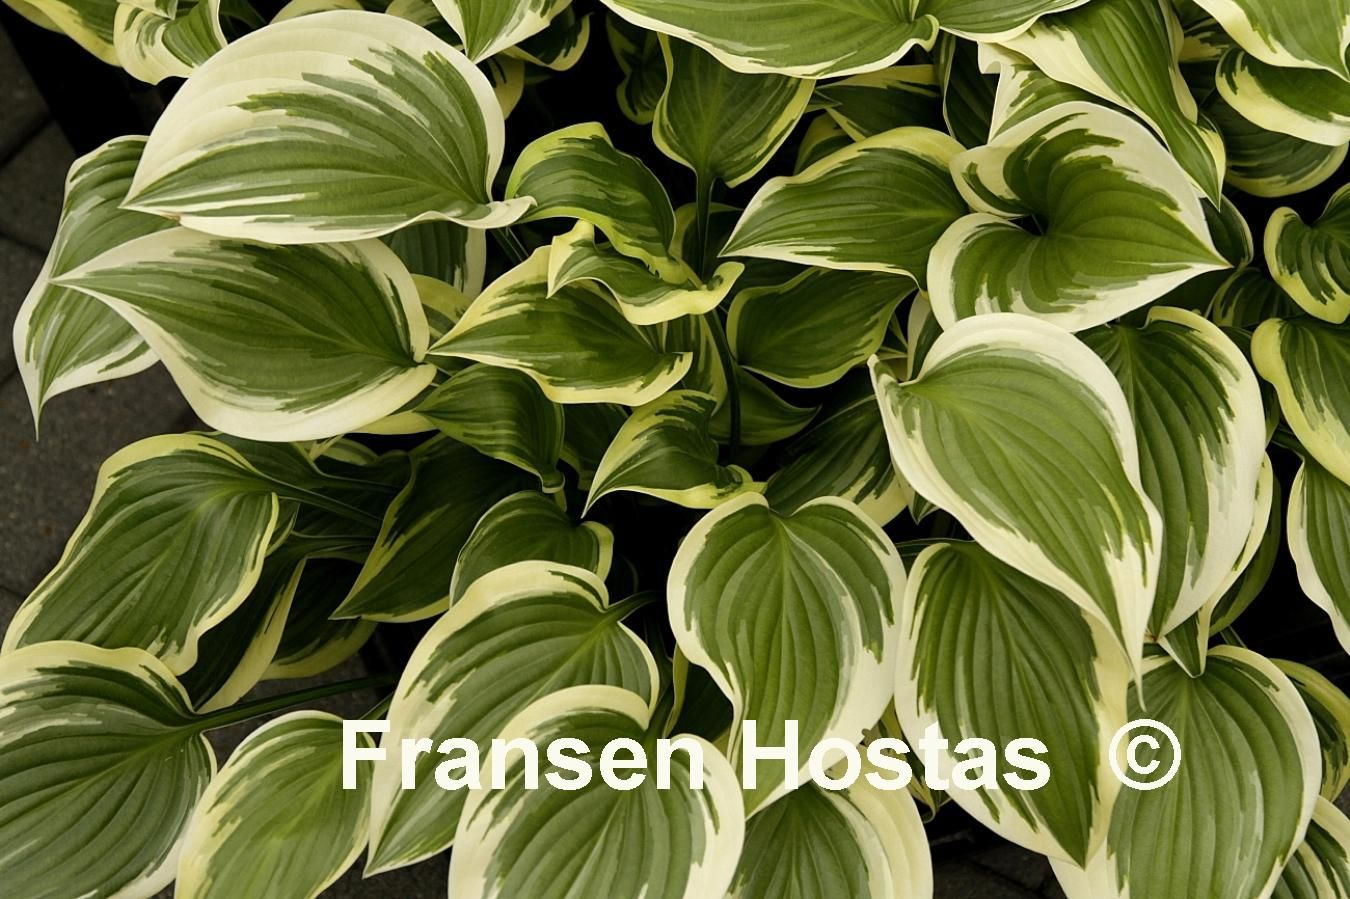 Hosta Emily Dickinson Small - can take sun  just one  purchased 2013 Mason Hollow Nursery, Mason, NH //2015 divided and put in backyard full sun bed w/winterberries